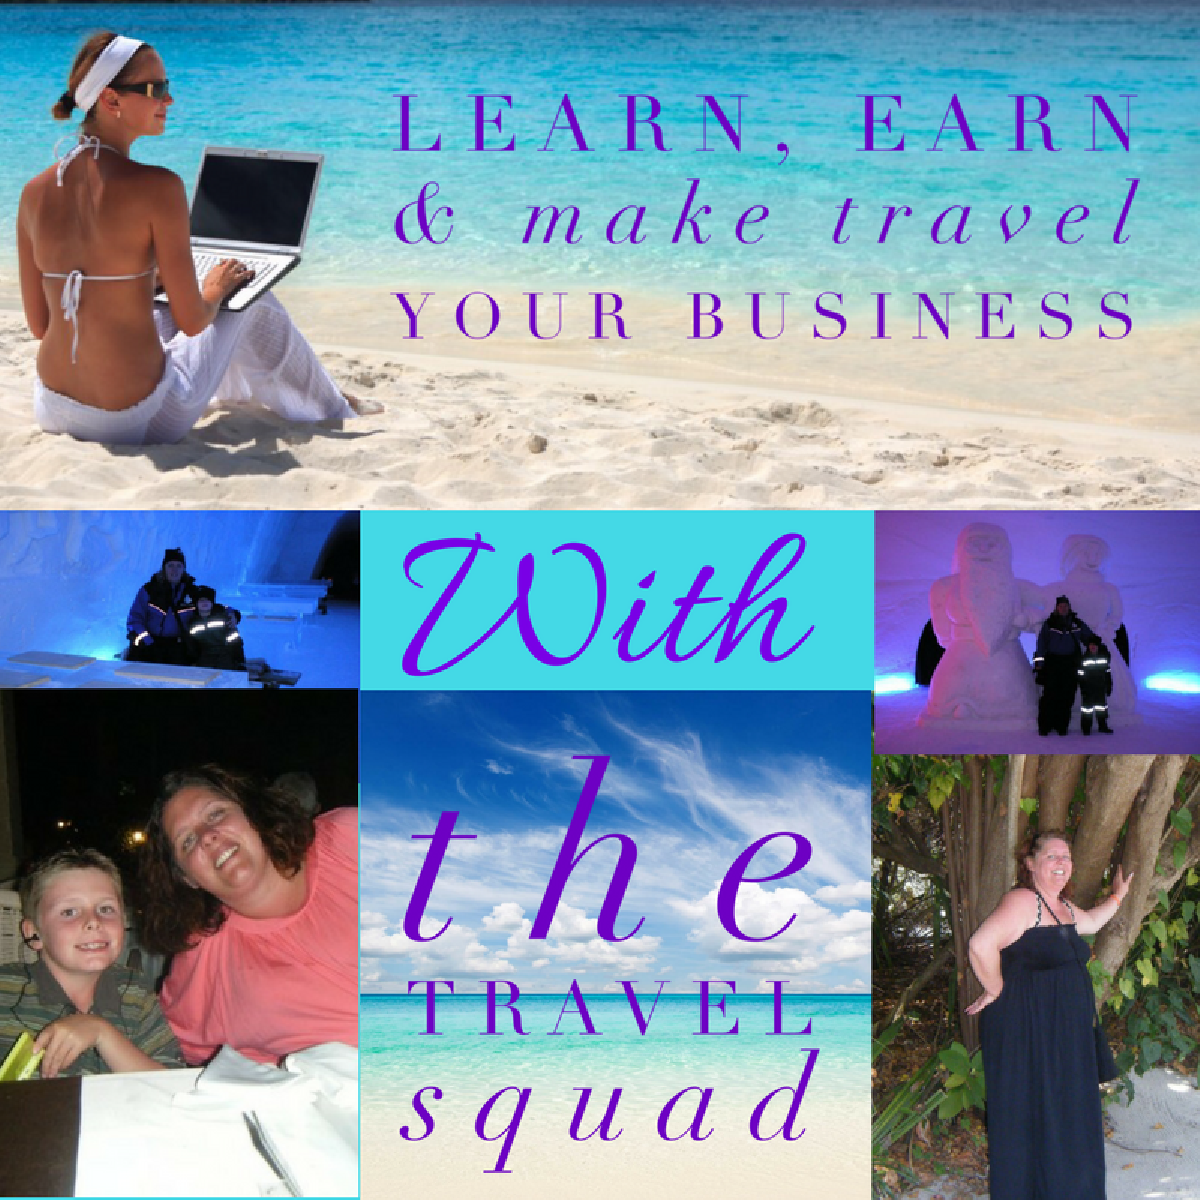 Find A Place To Rent: Travel Business Opportunity For Sale In Mobile/Online